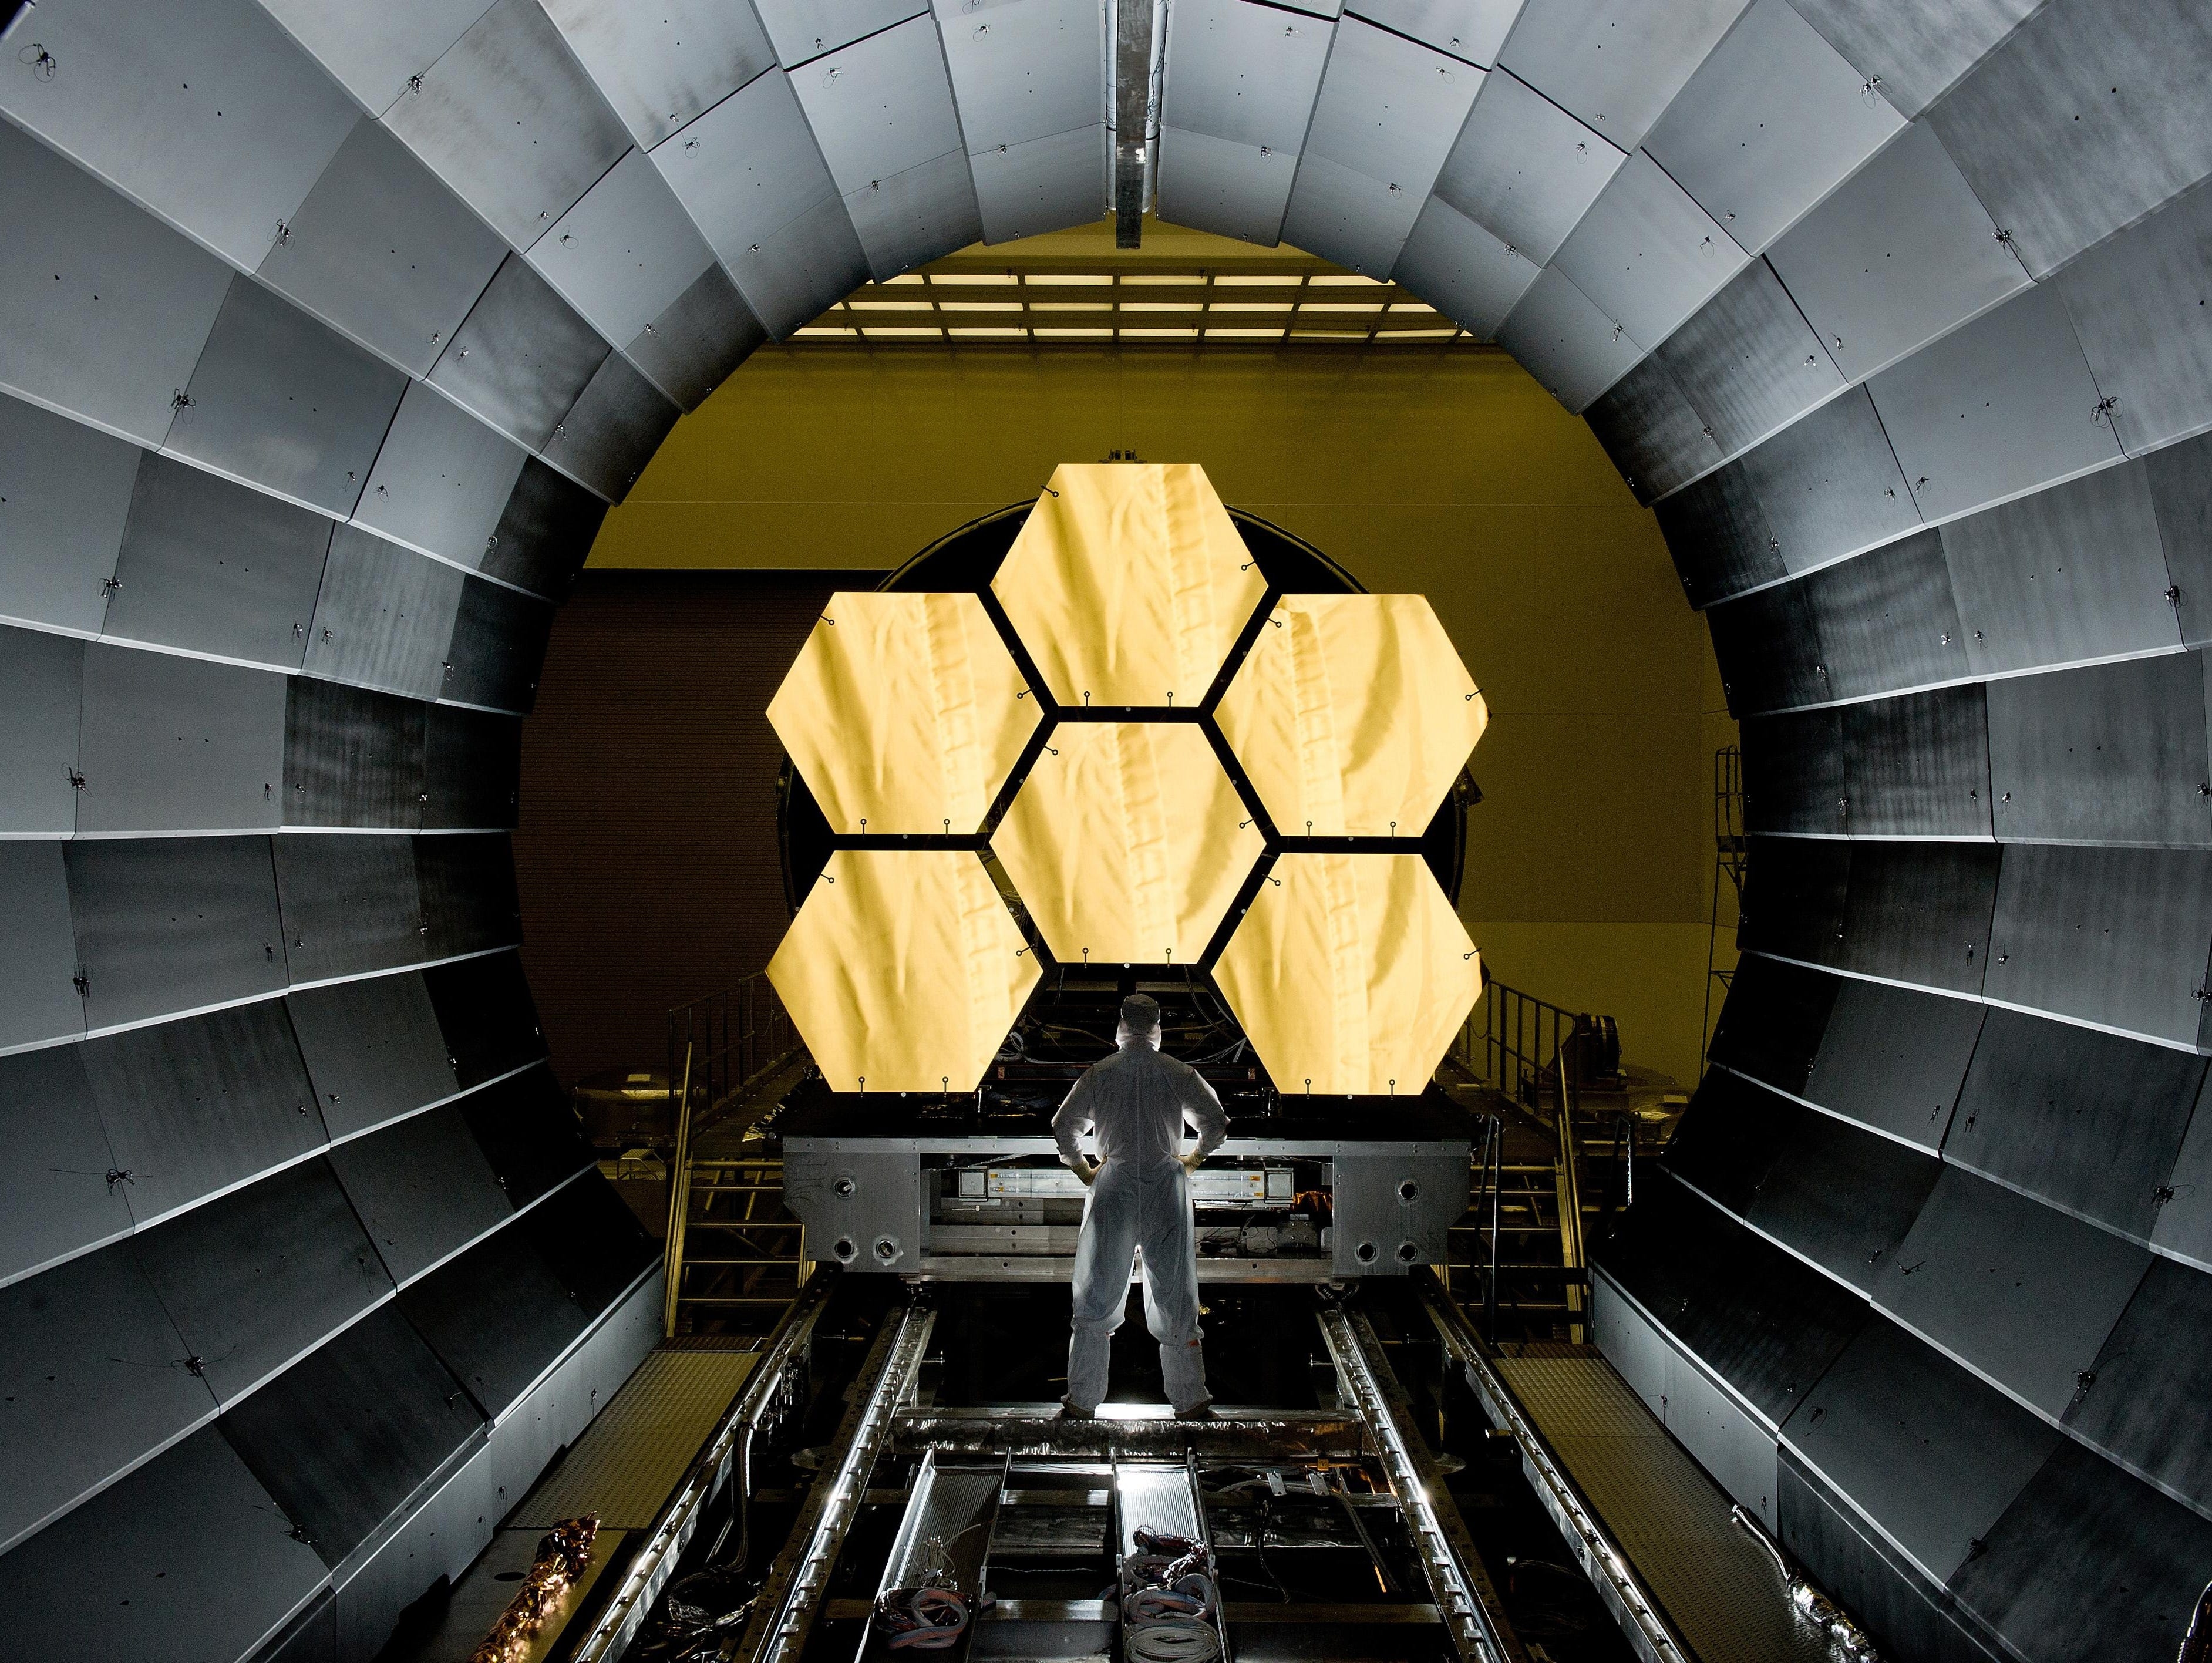 NASA engineer Ernie Wright check out the first six completed segments of the primary mirror for the James Webb Space Telescope, the successor to Hubble.